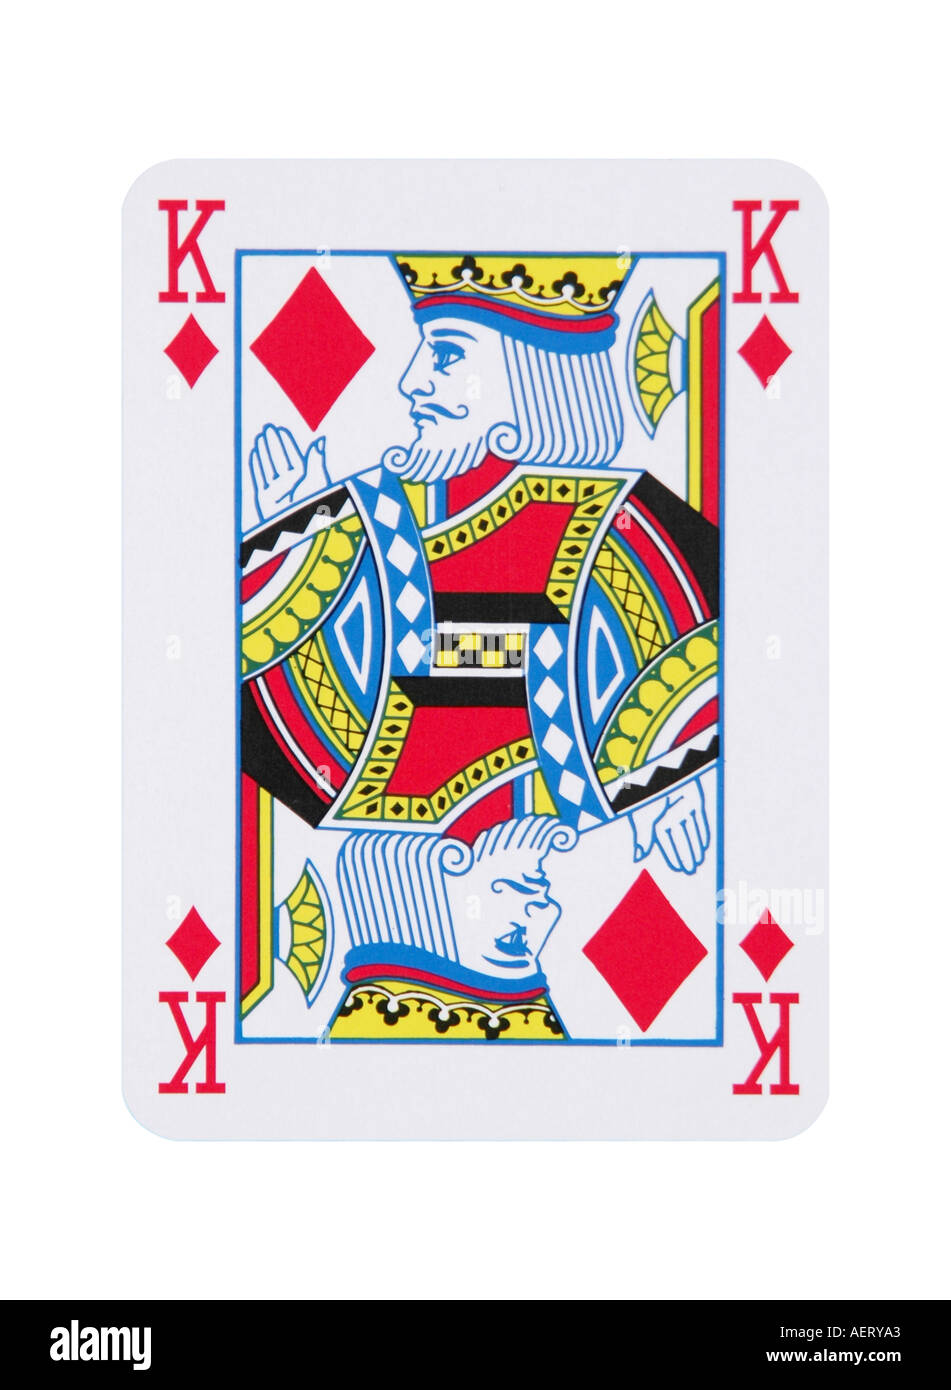 King Of Coins Pentacles As Advice: King Of Diamonds Stock Photos & King Of Diamonds Stock